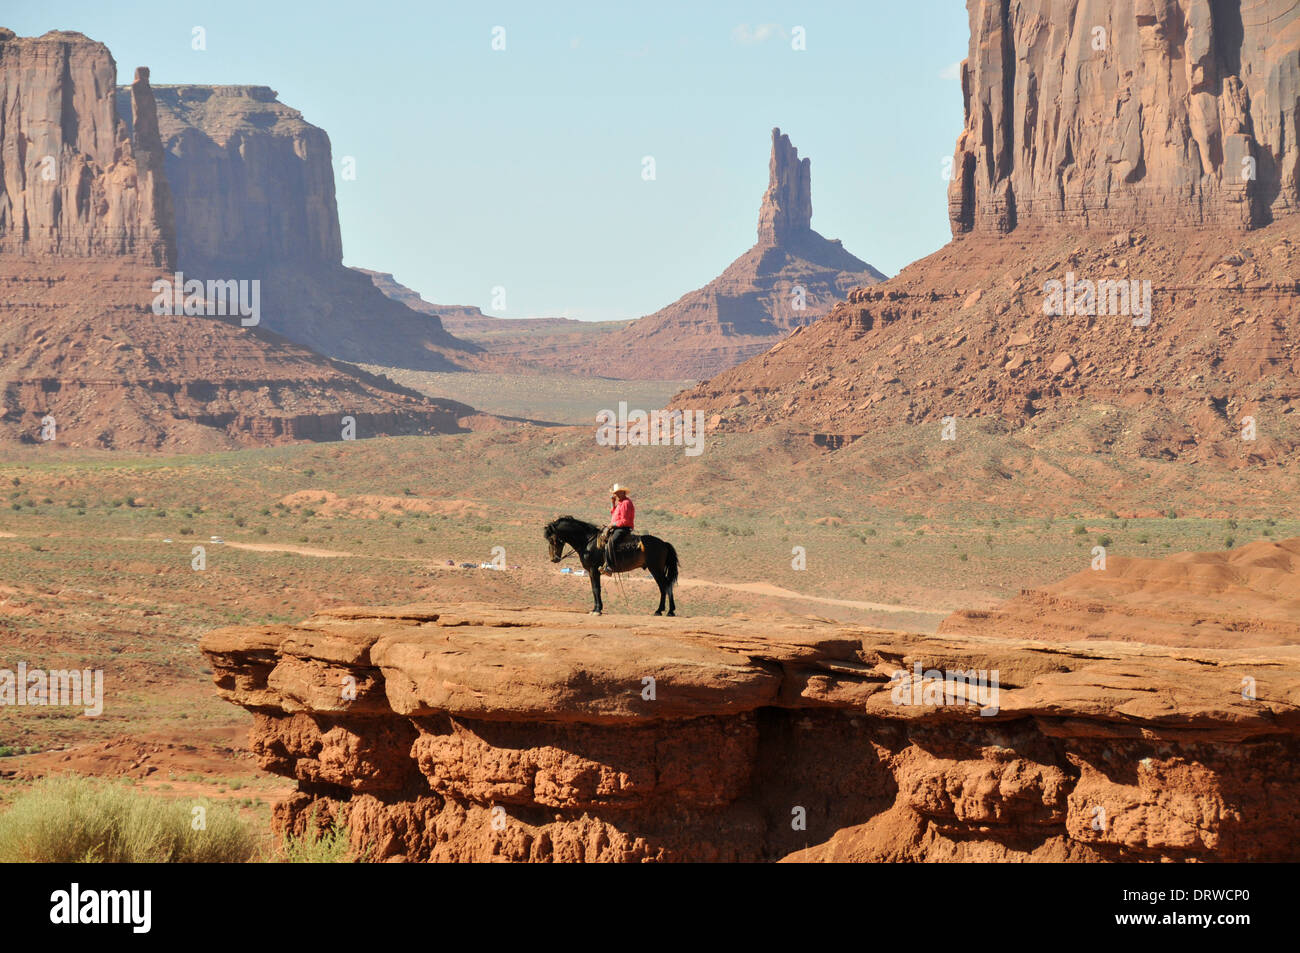 black singles in monument valley Roy black's guided tours: a magical tour of monument valley - see 266 traveller reviews, 175 candid photos, and great deals for monument valley, ut, at tripadvisor.